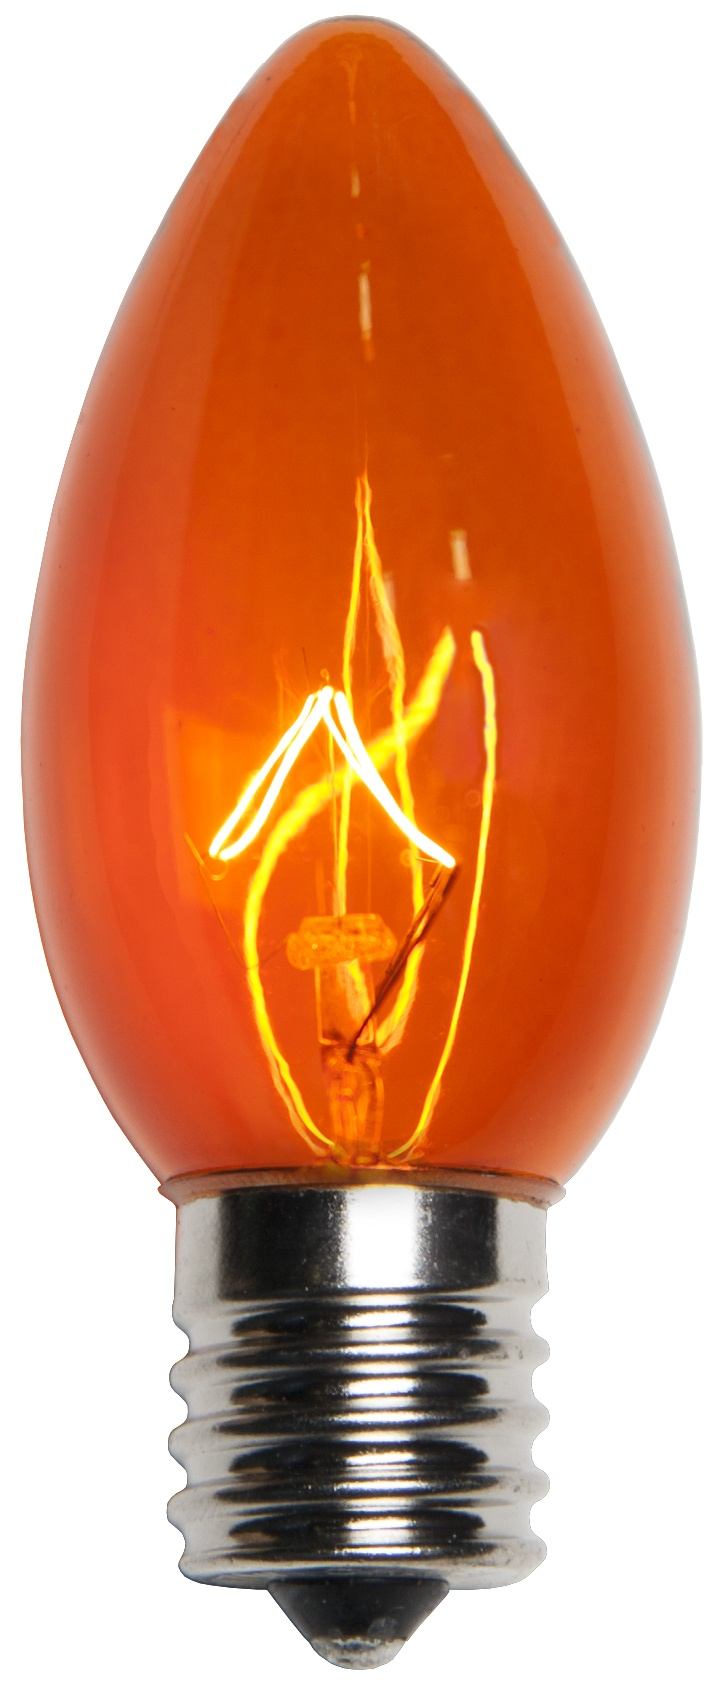 C9 Amber Transparent Incandescent Bulb